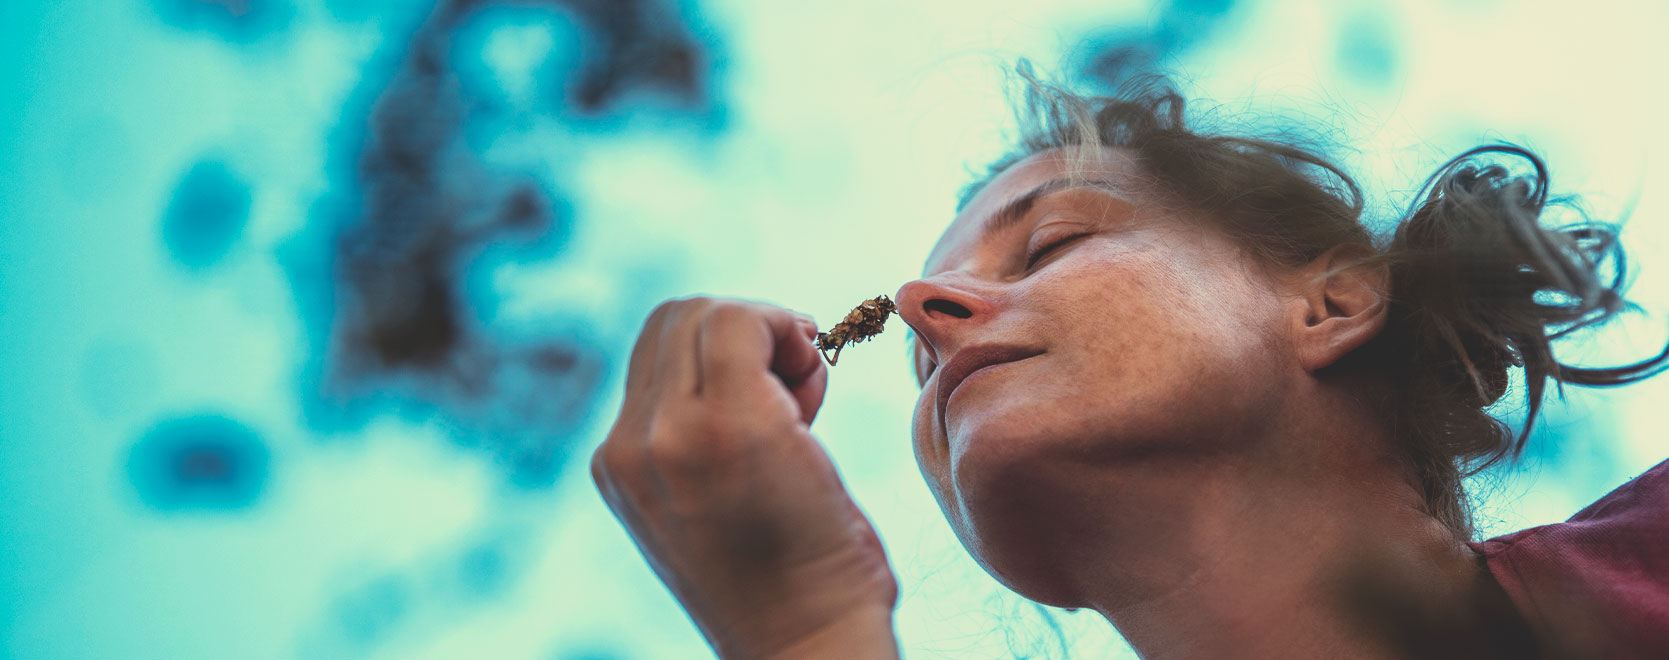 Can cannabis help people deal with anxiety, stress, weight loss, laying off alcohol…?